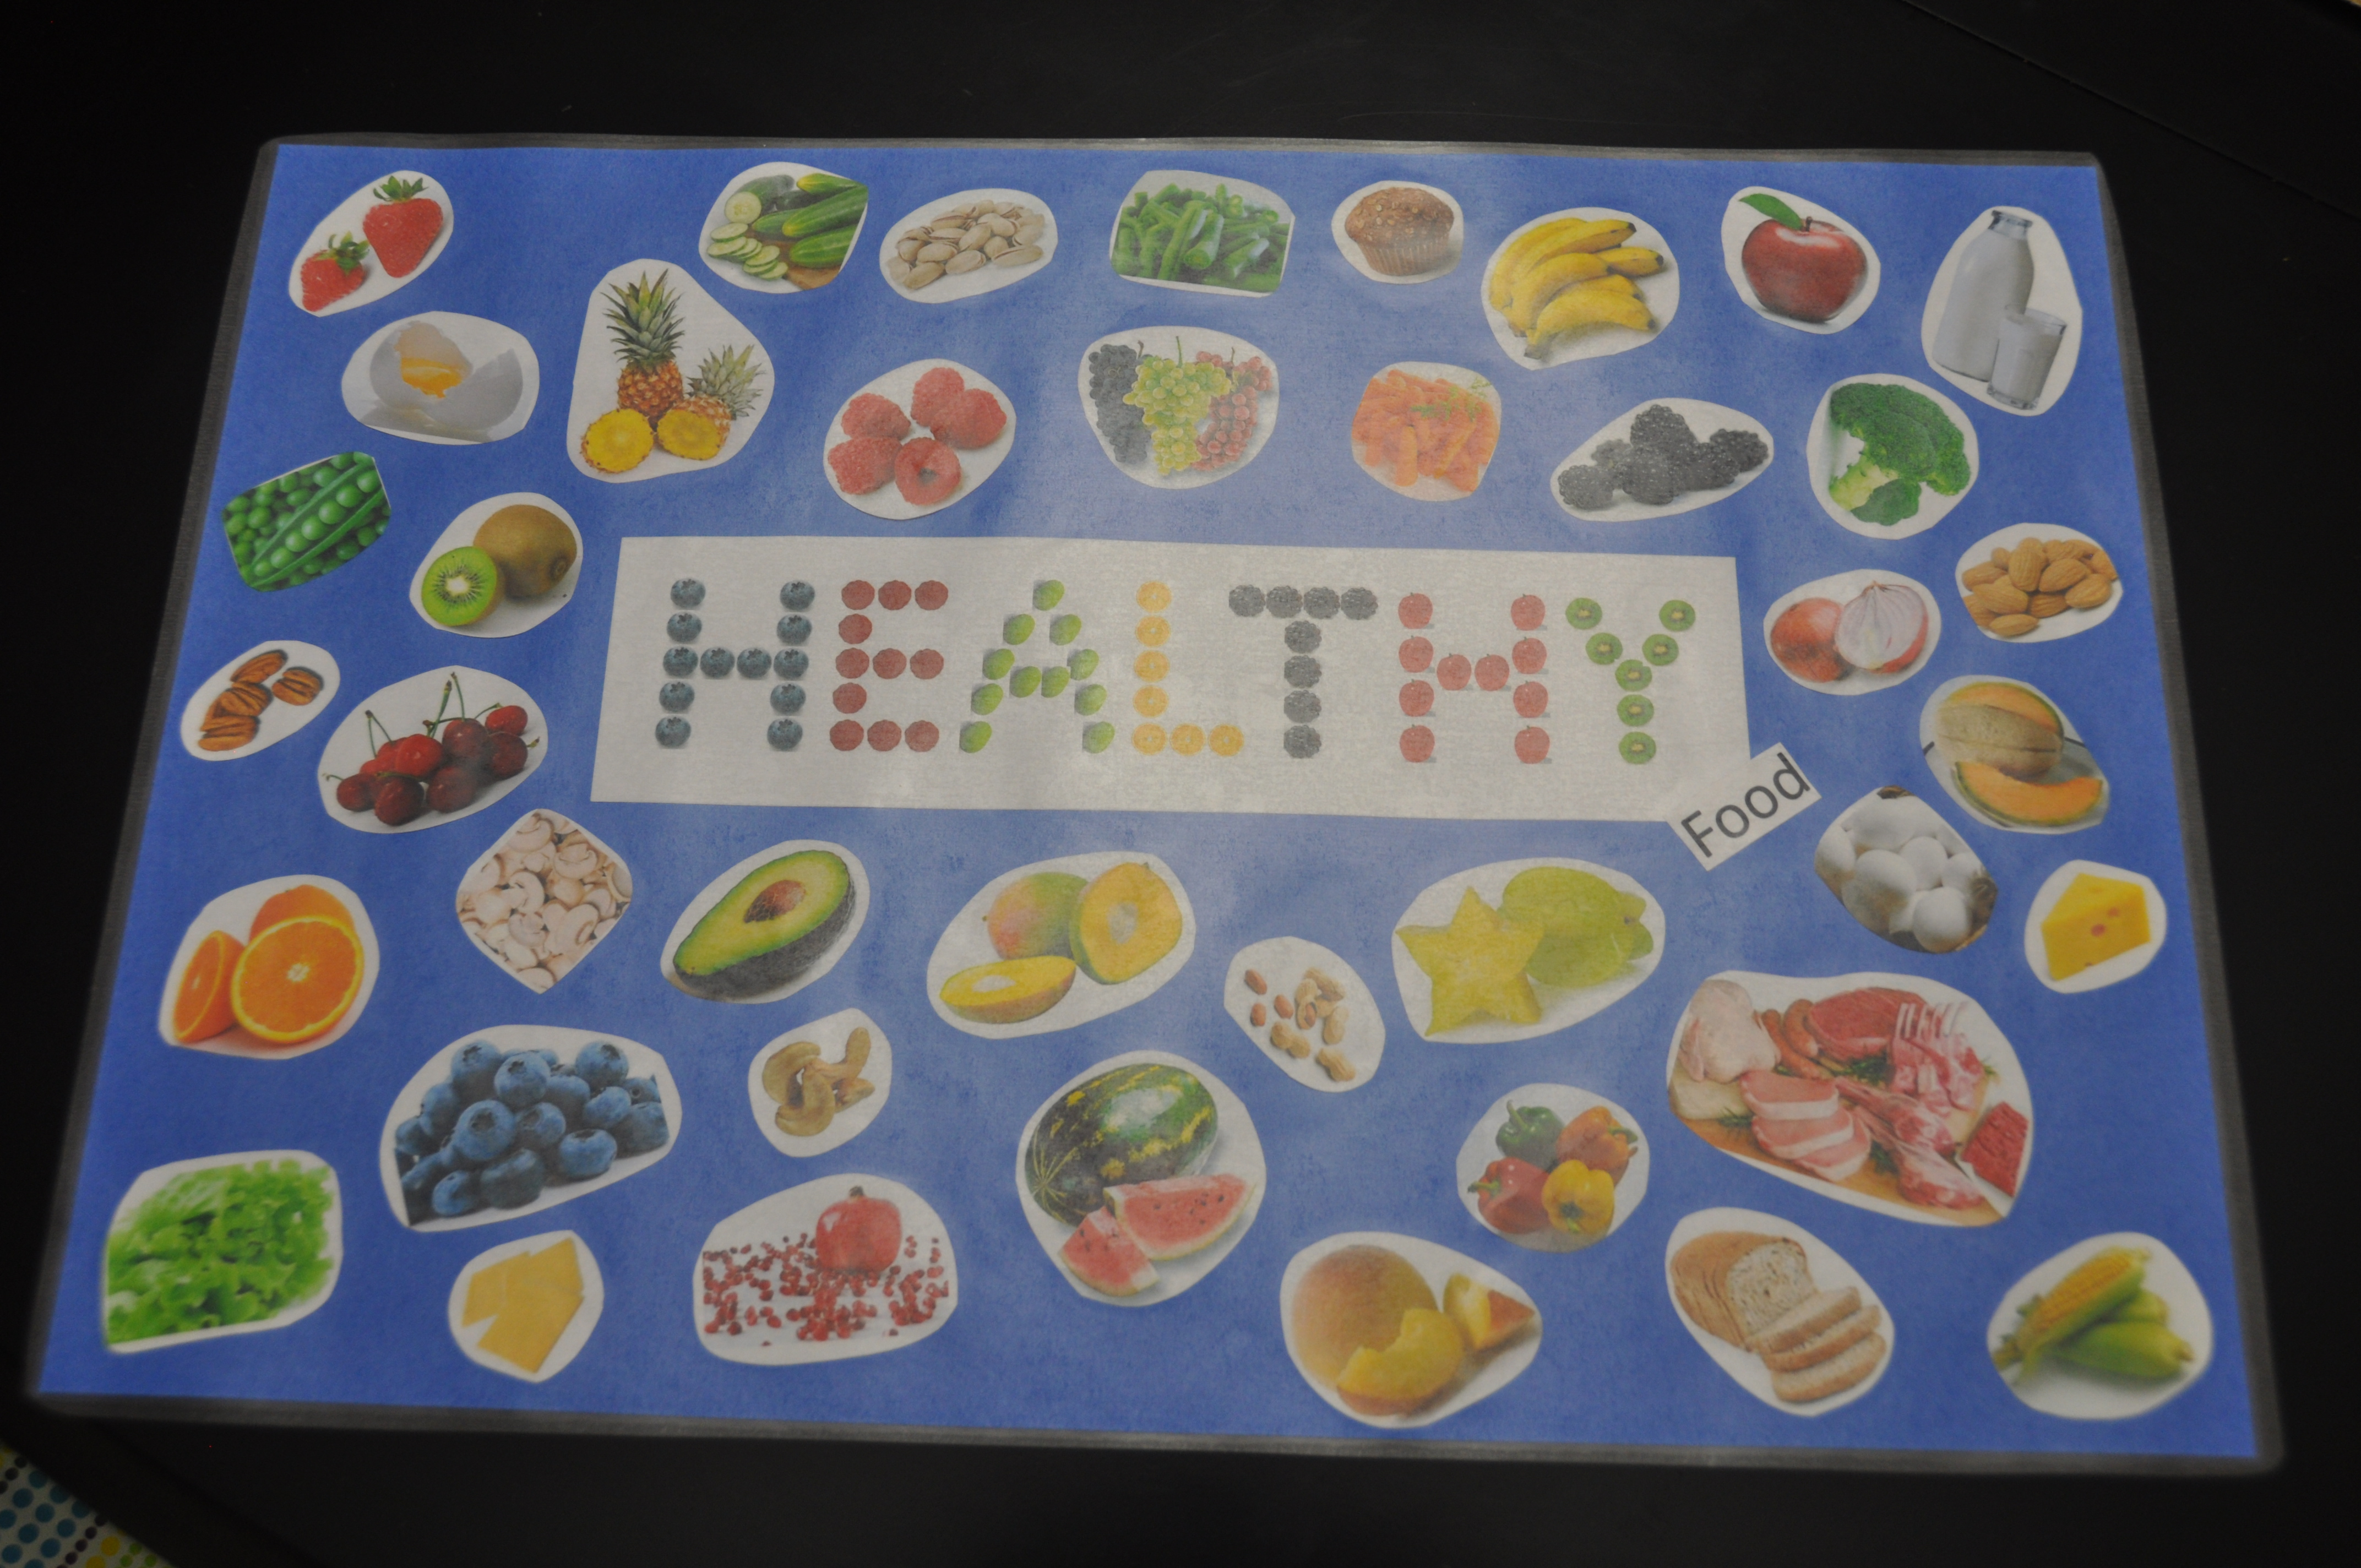 Healthy Food Placemat